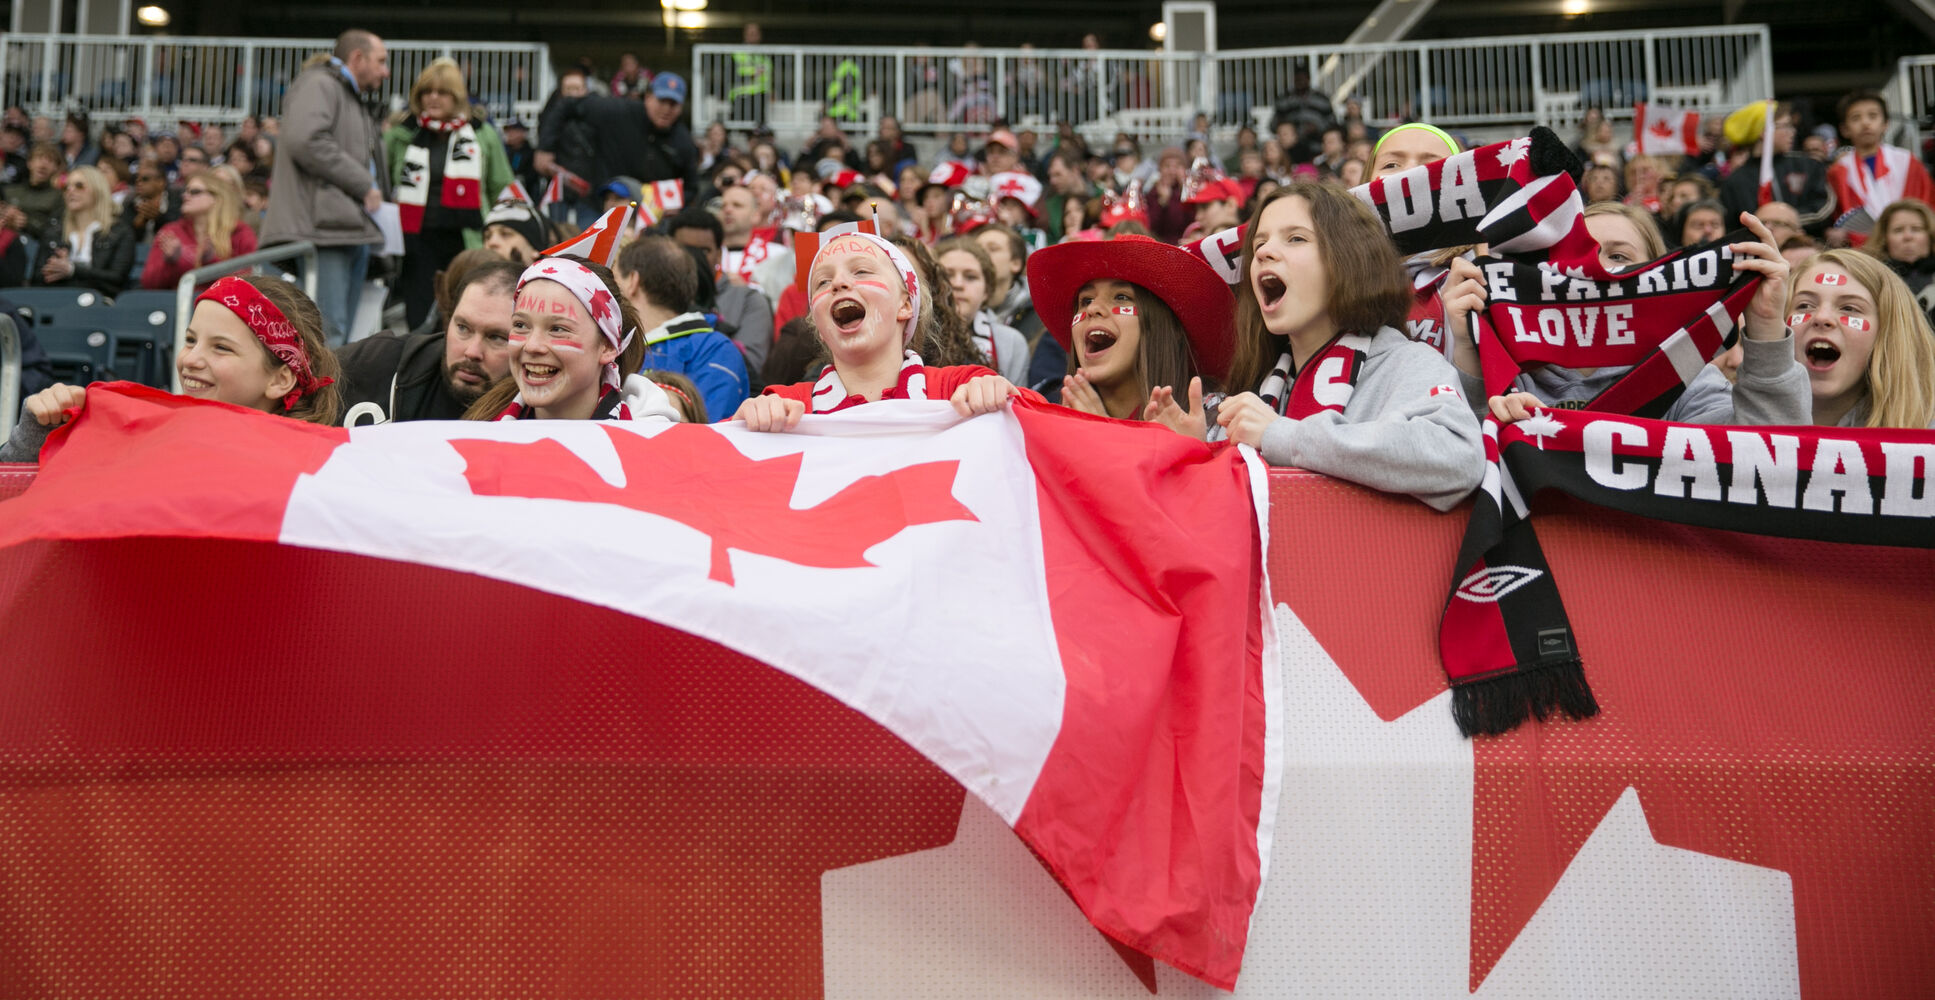 Young Team Canada fans cheer during Canada women's soccer against Team USA at Investors Group Field. (Melissa Tait / Winnipeg Free Press)